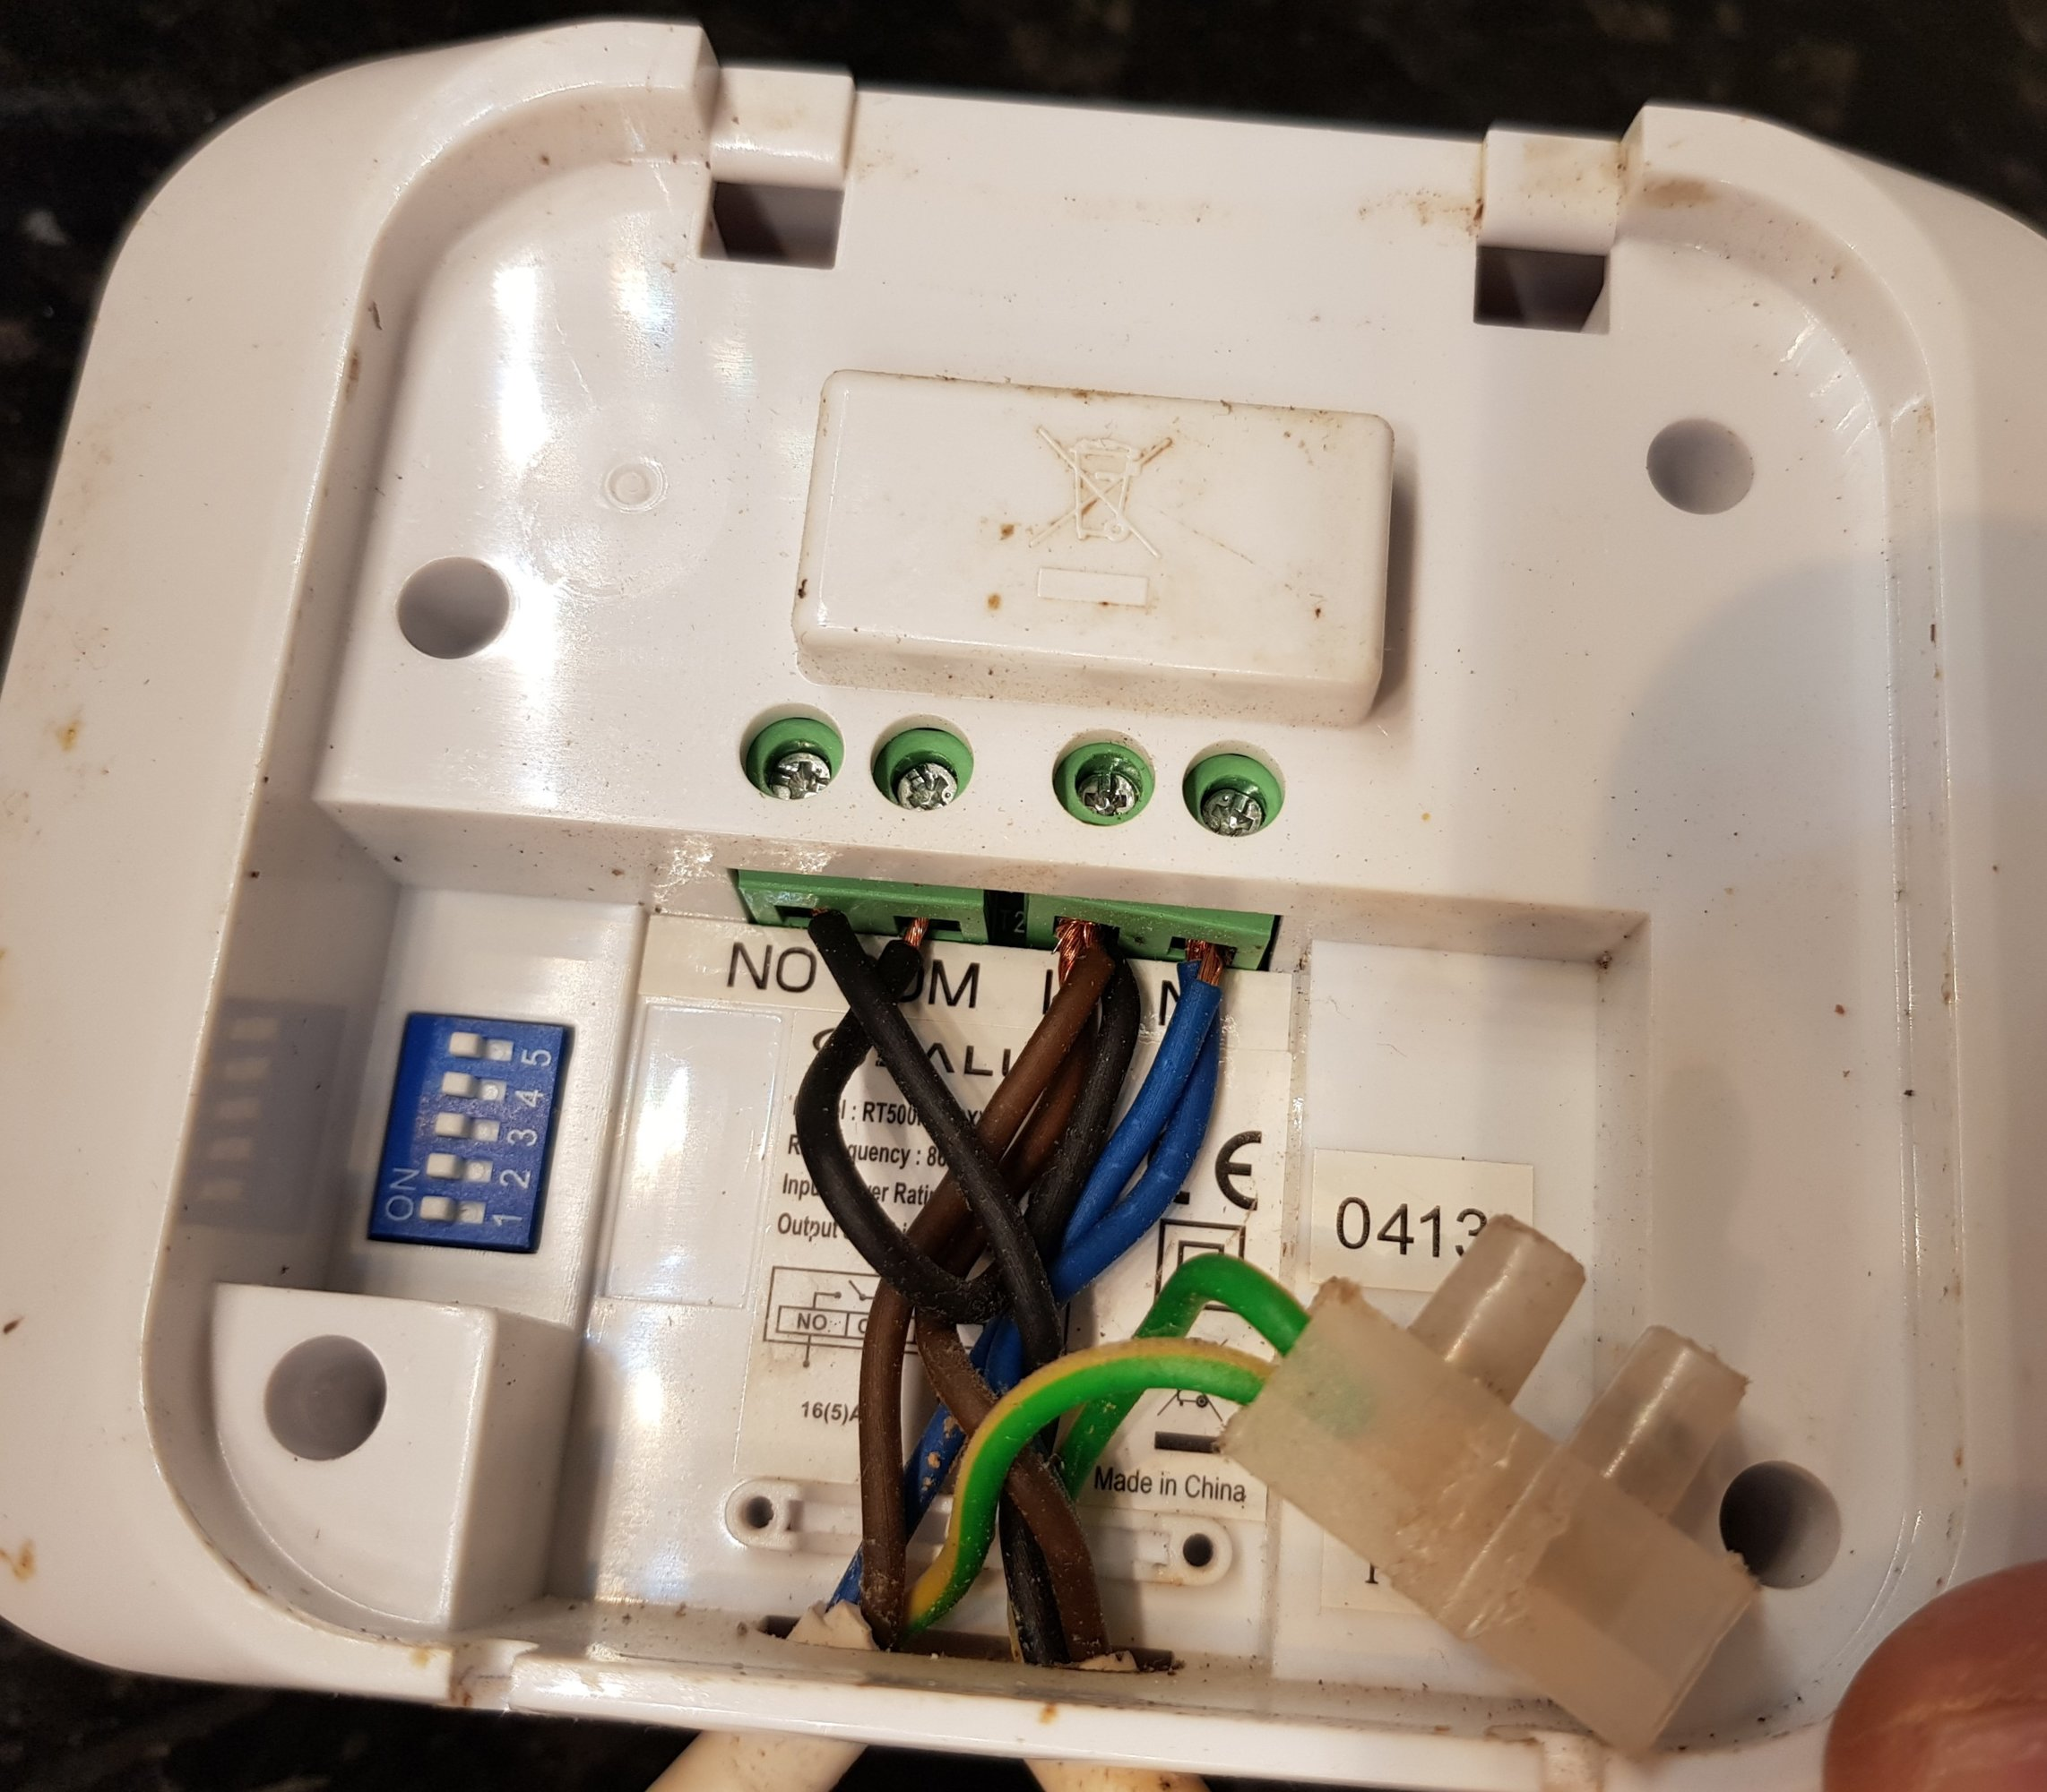 Help Please In Self Installing Hive With Salus Rt500rf And Valiant Ecotec Plus 831 Boiler